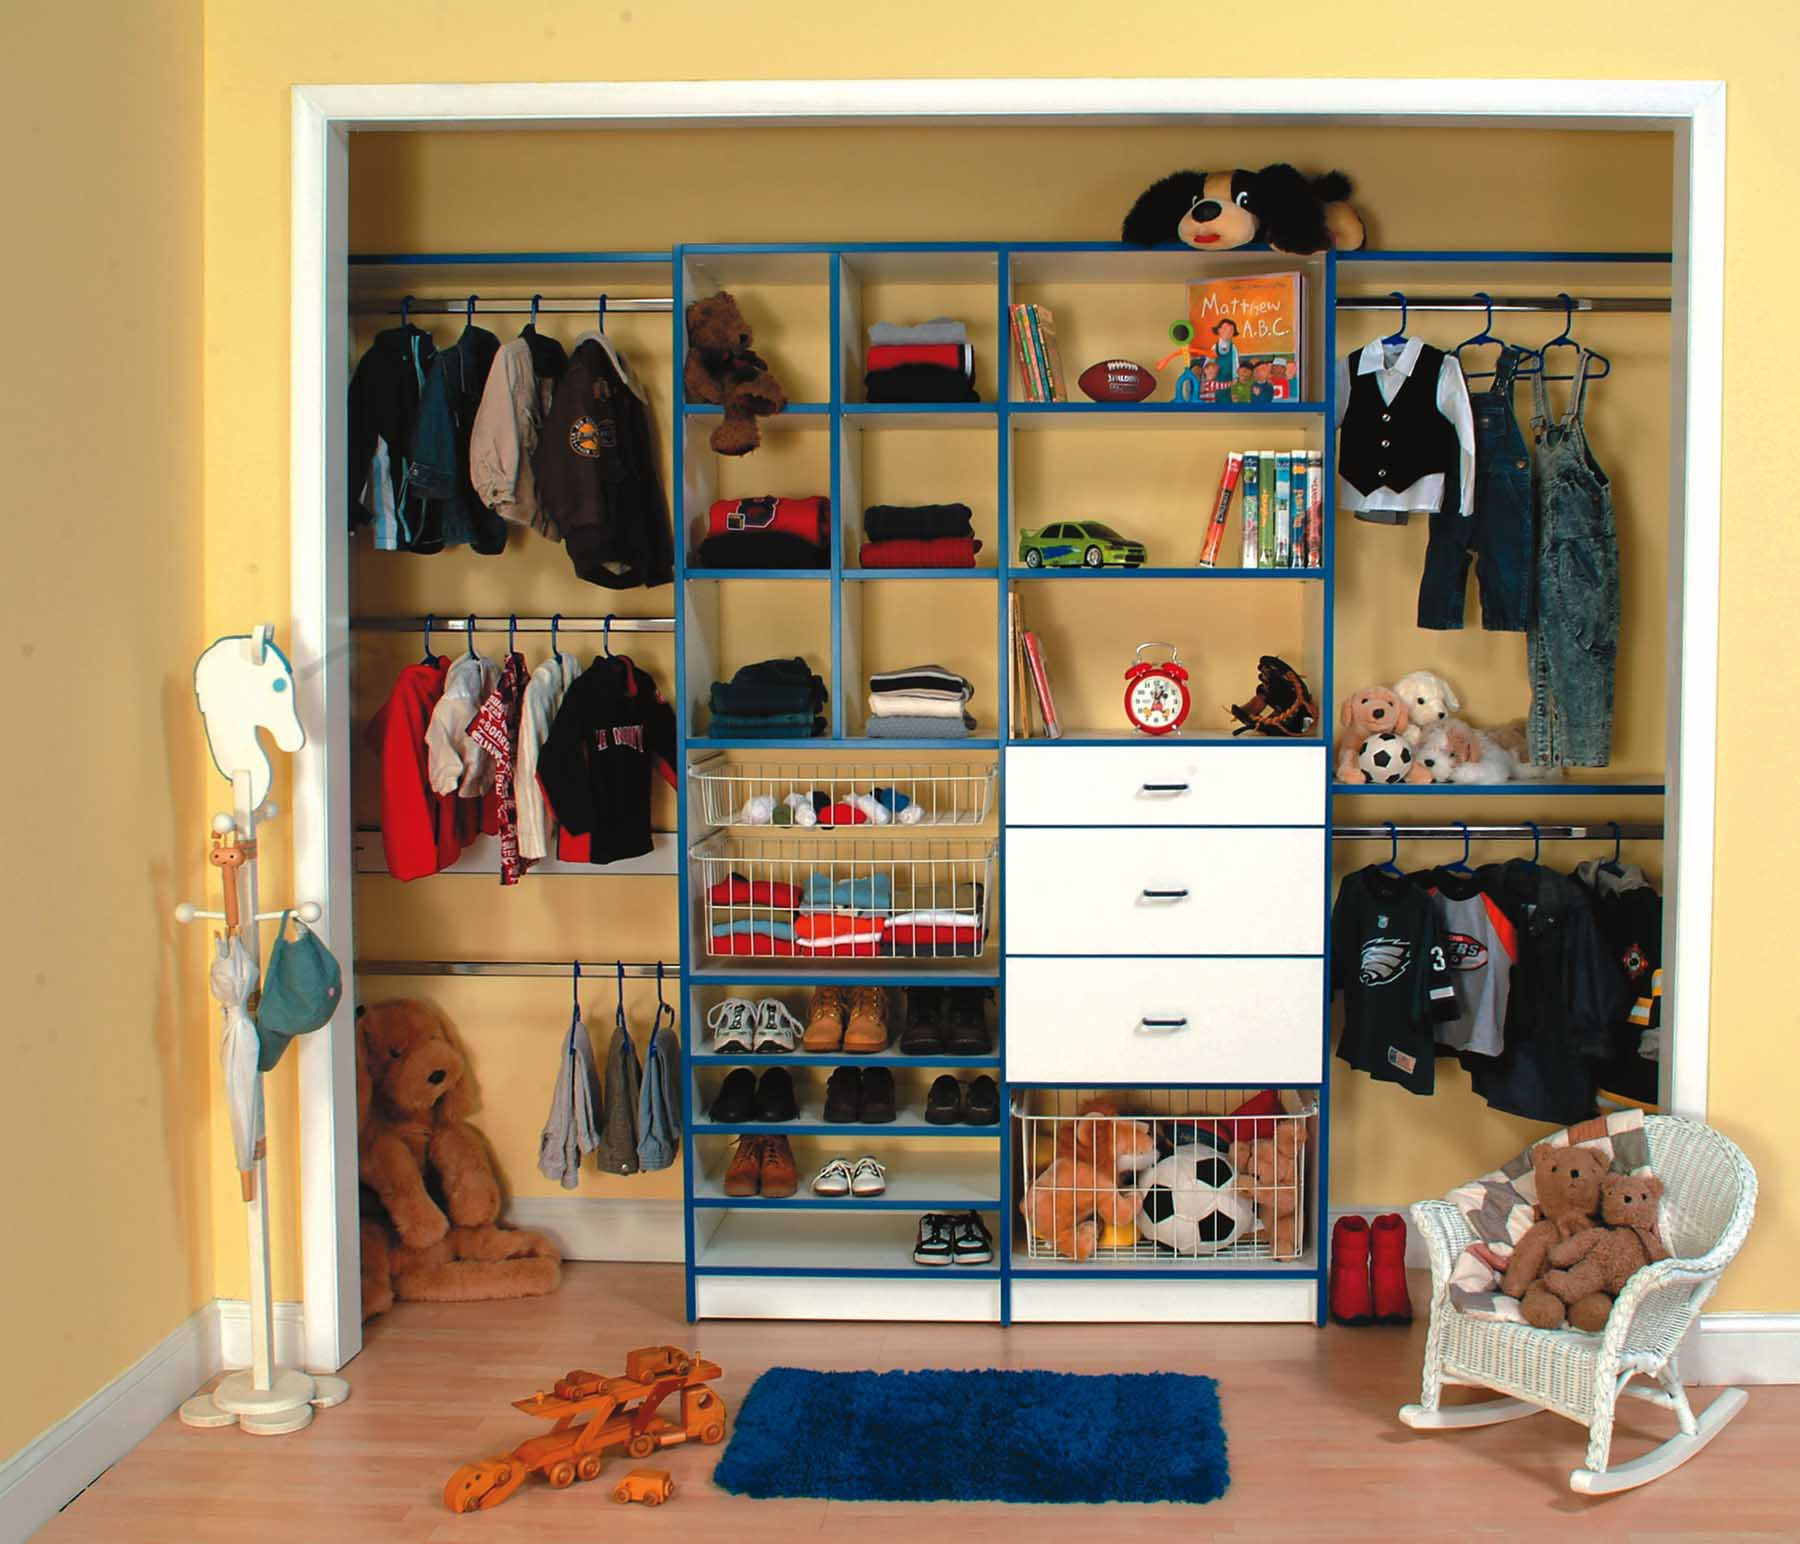 Organized childrens rech in closet